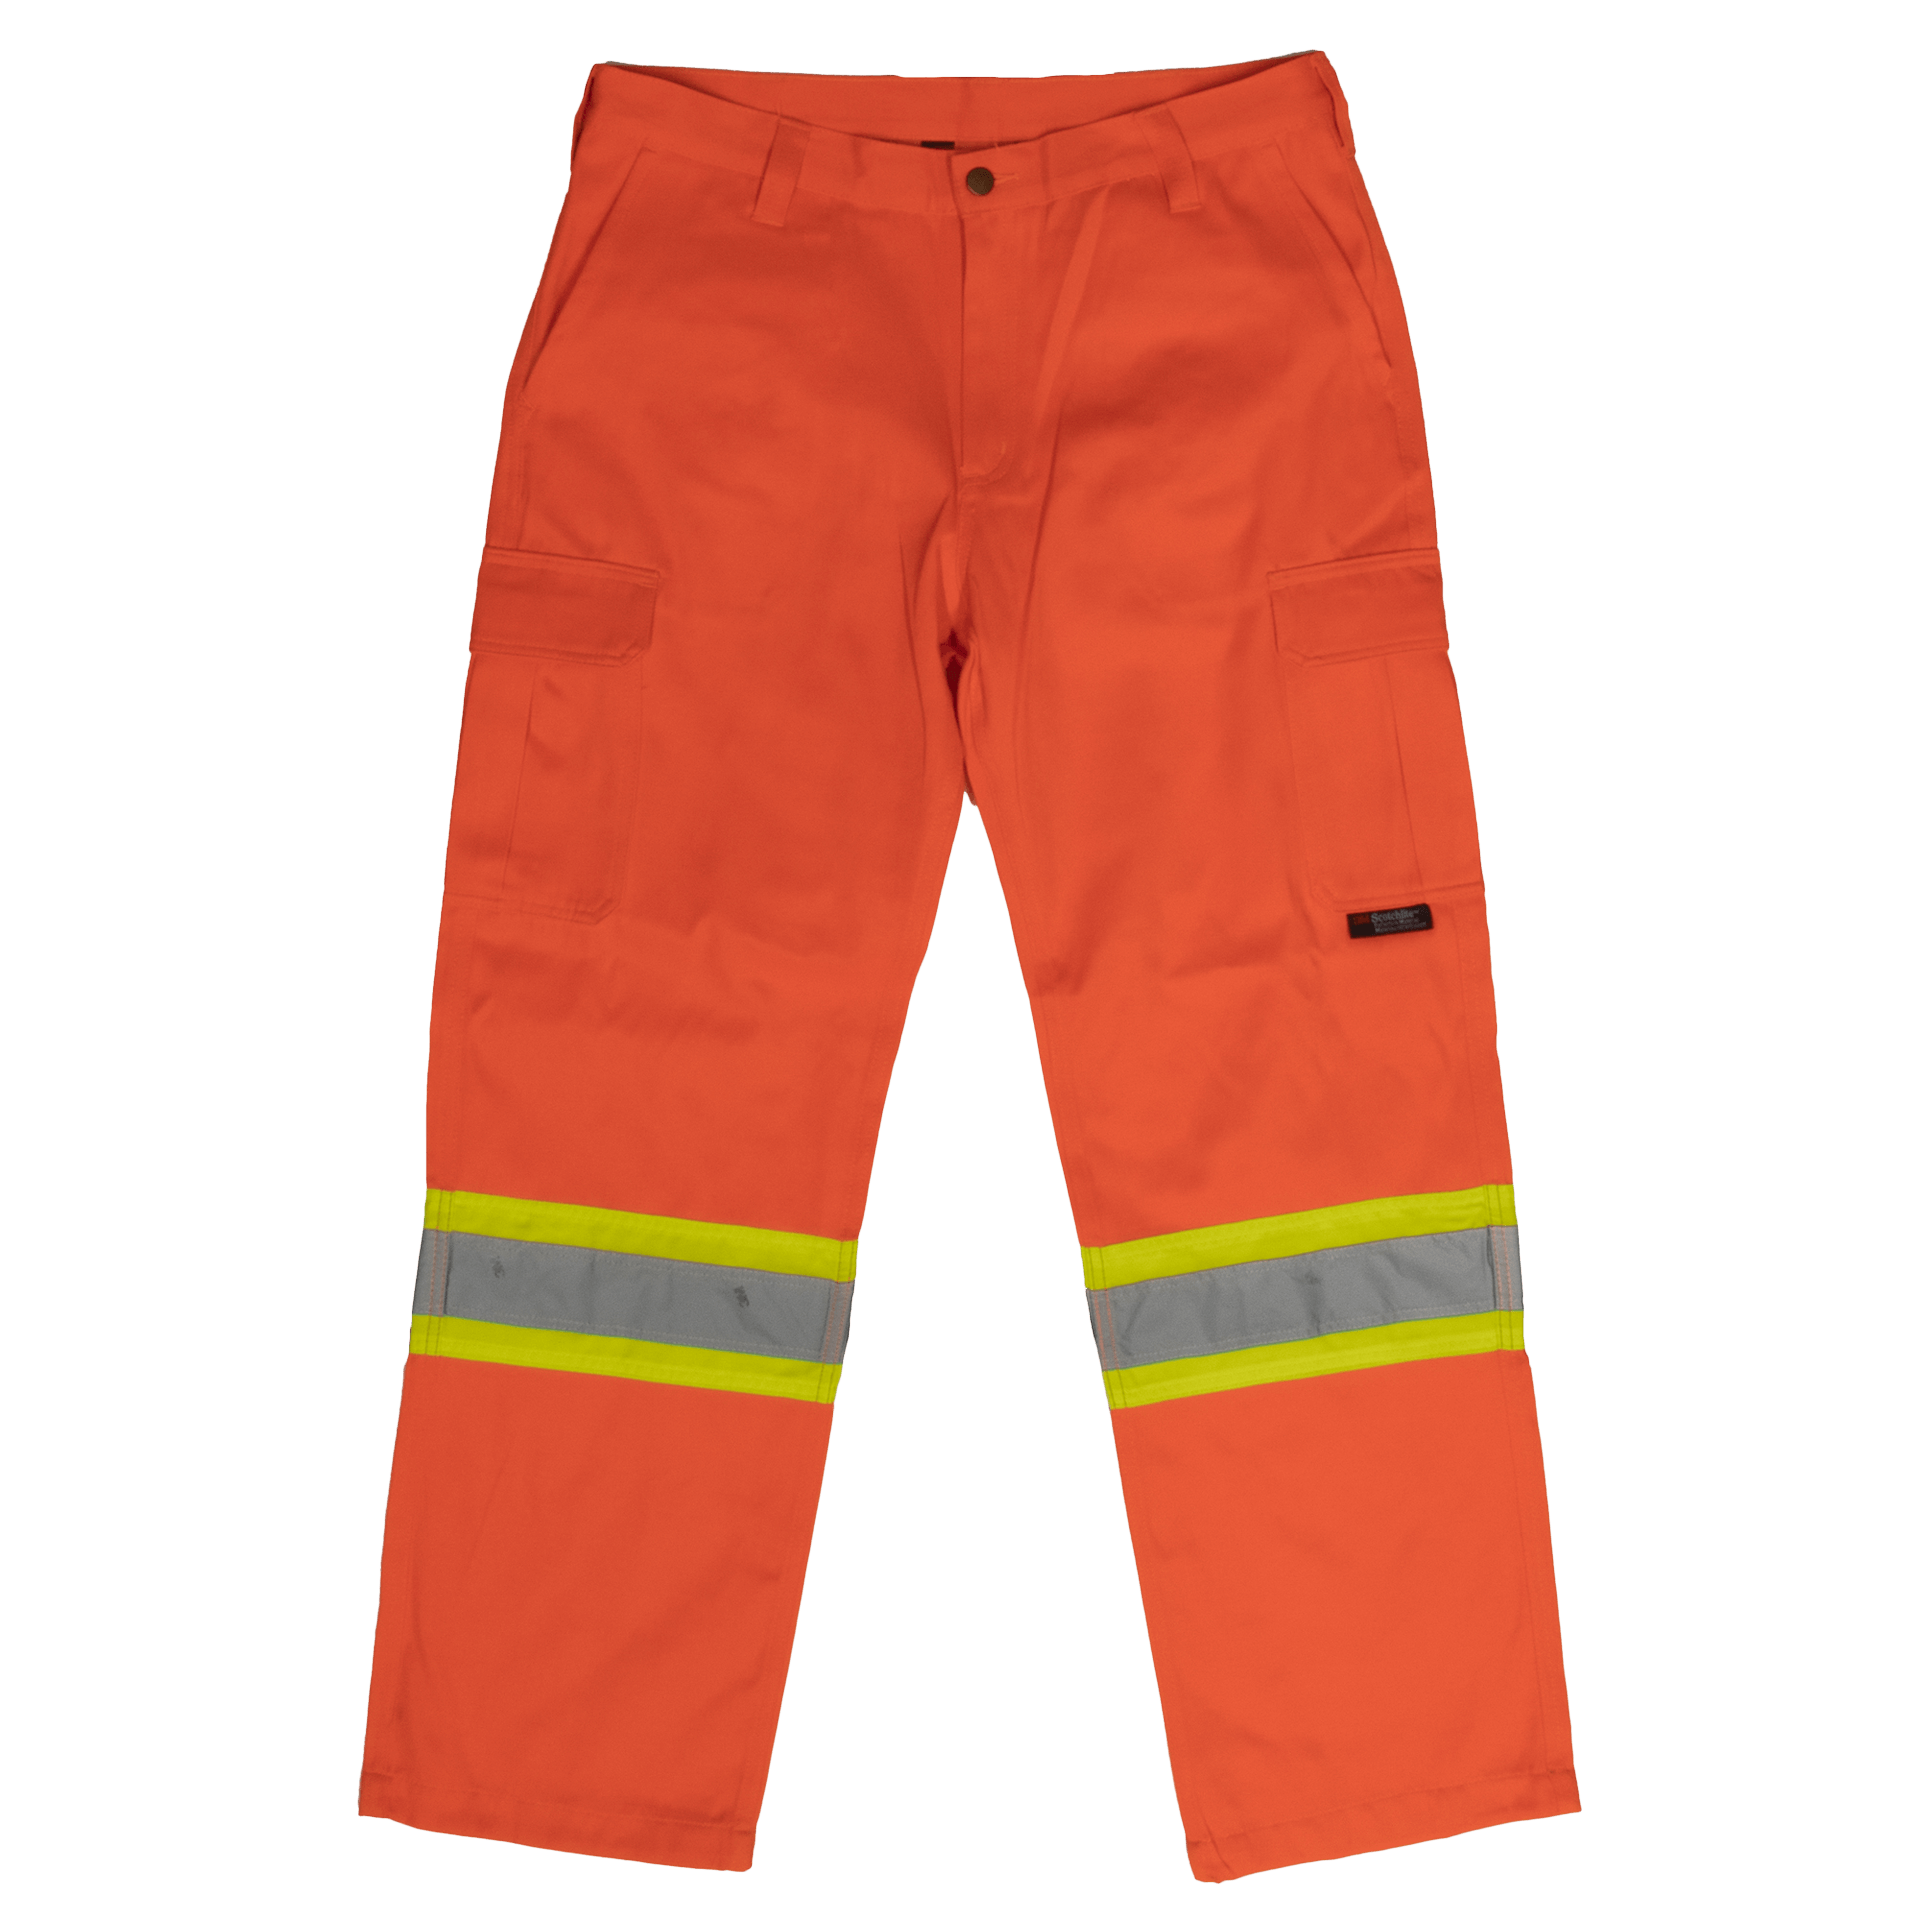 High Visibility Tough Duck Safety Cargo Work Pant SP01